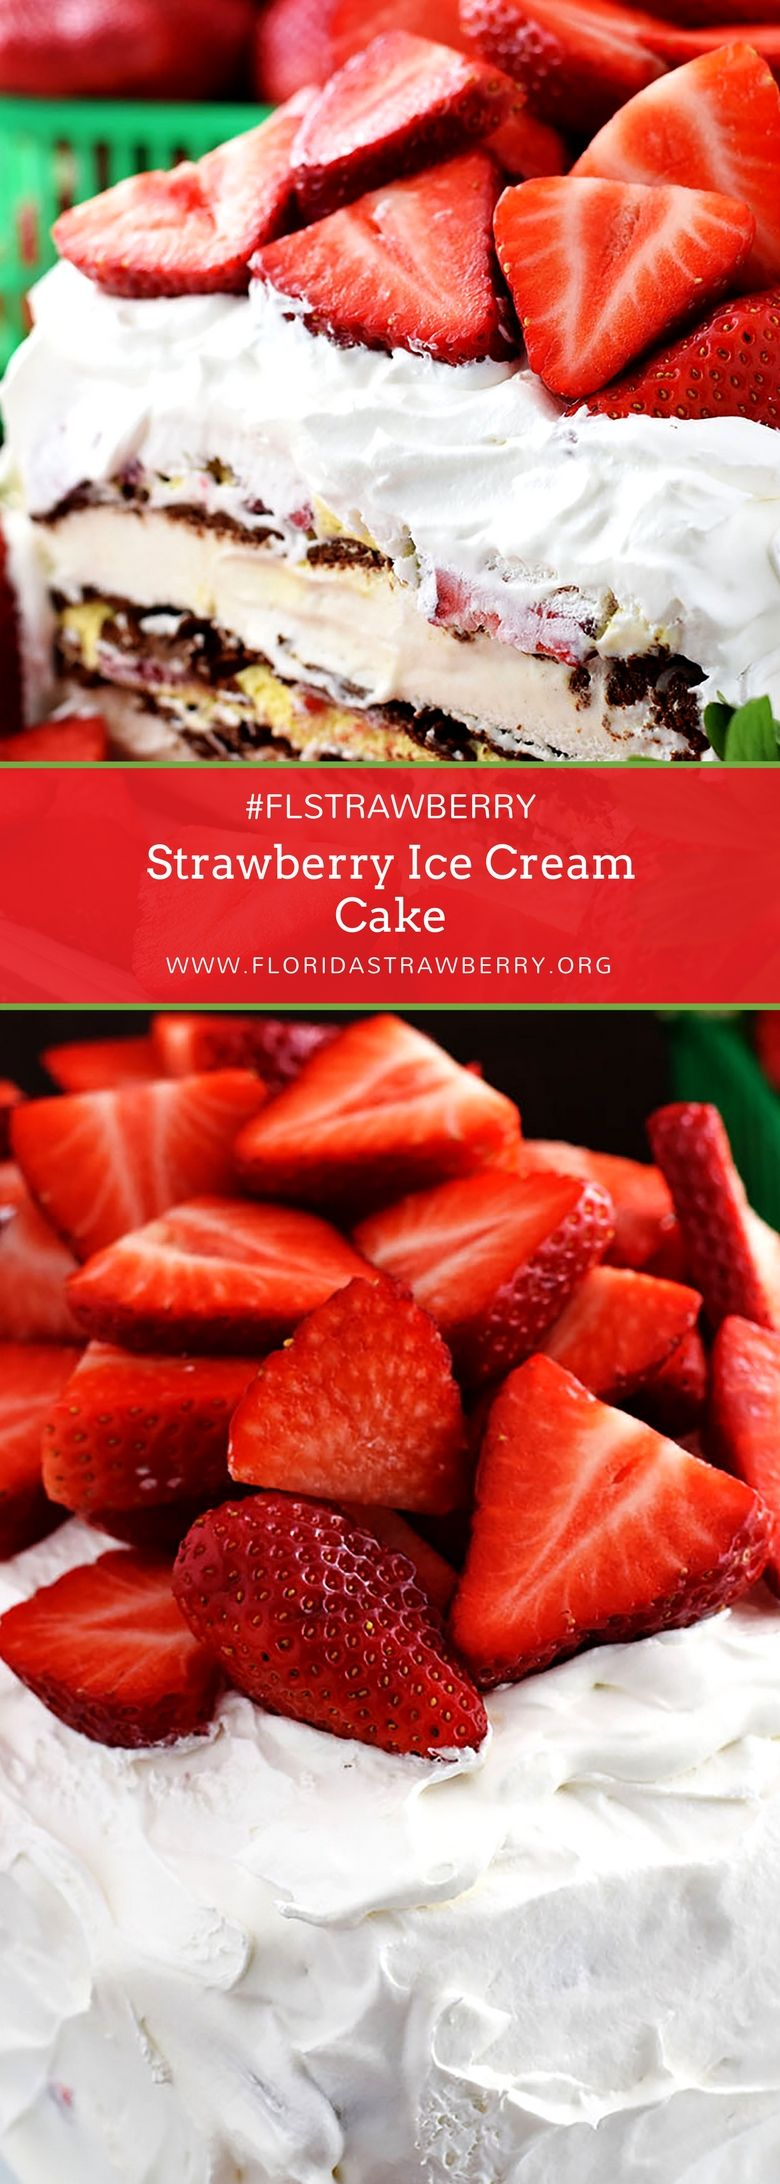 Strawberry Ice Cream Cake is an easy no bake dessert made with layers of ice cream sandwiches, a creamy marshmallow pudding, whipped topping and delicious and nutritious Florida Strawberries! #FLStrawberry #strawberryrecipes #strawberryseason #dessert #dessertrecipes